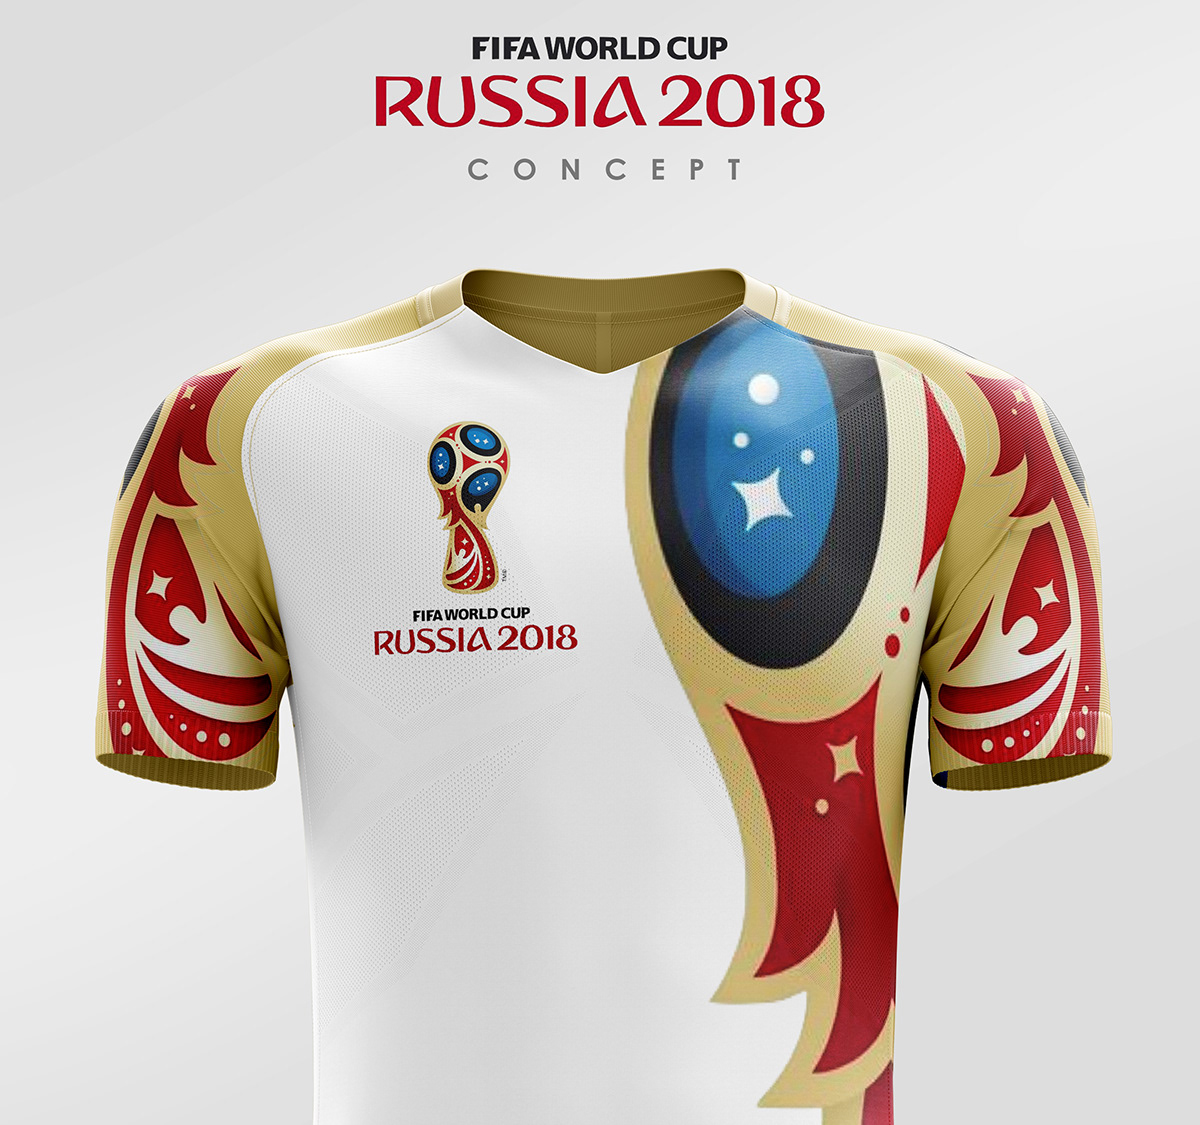 Fifa world cup Russia 2018 soccer kit concept on Behance b2f89e478